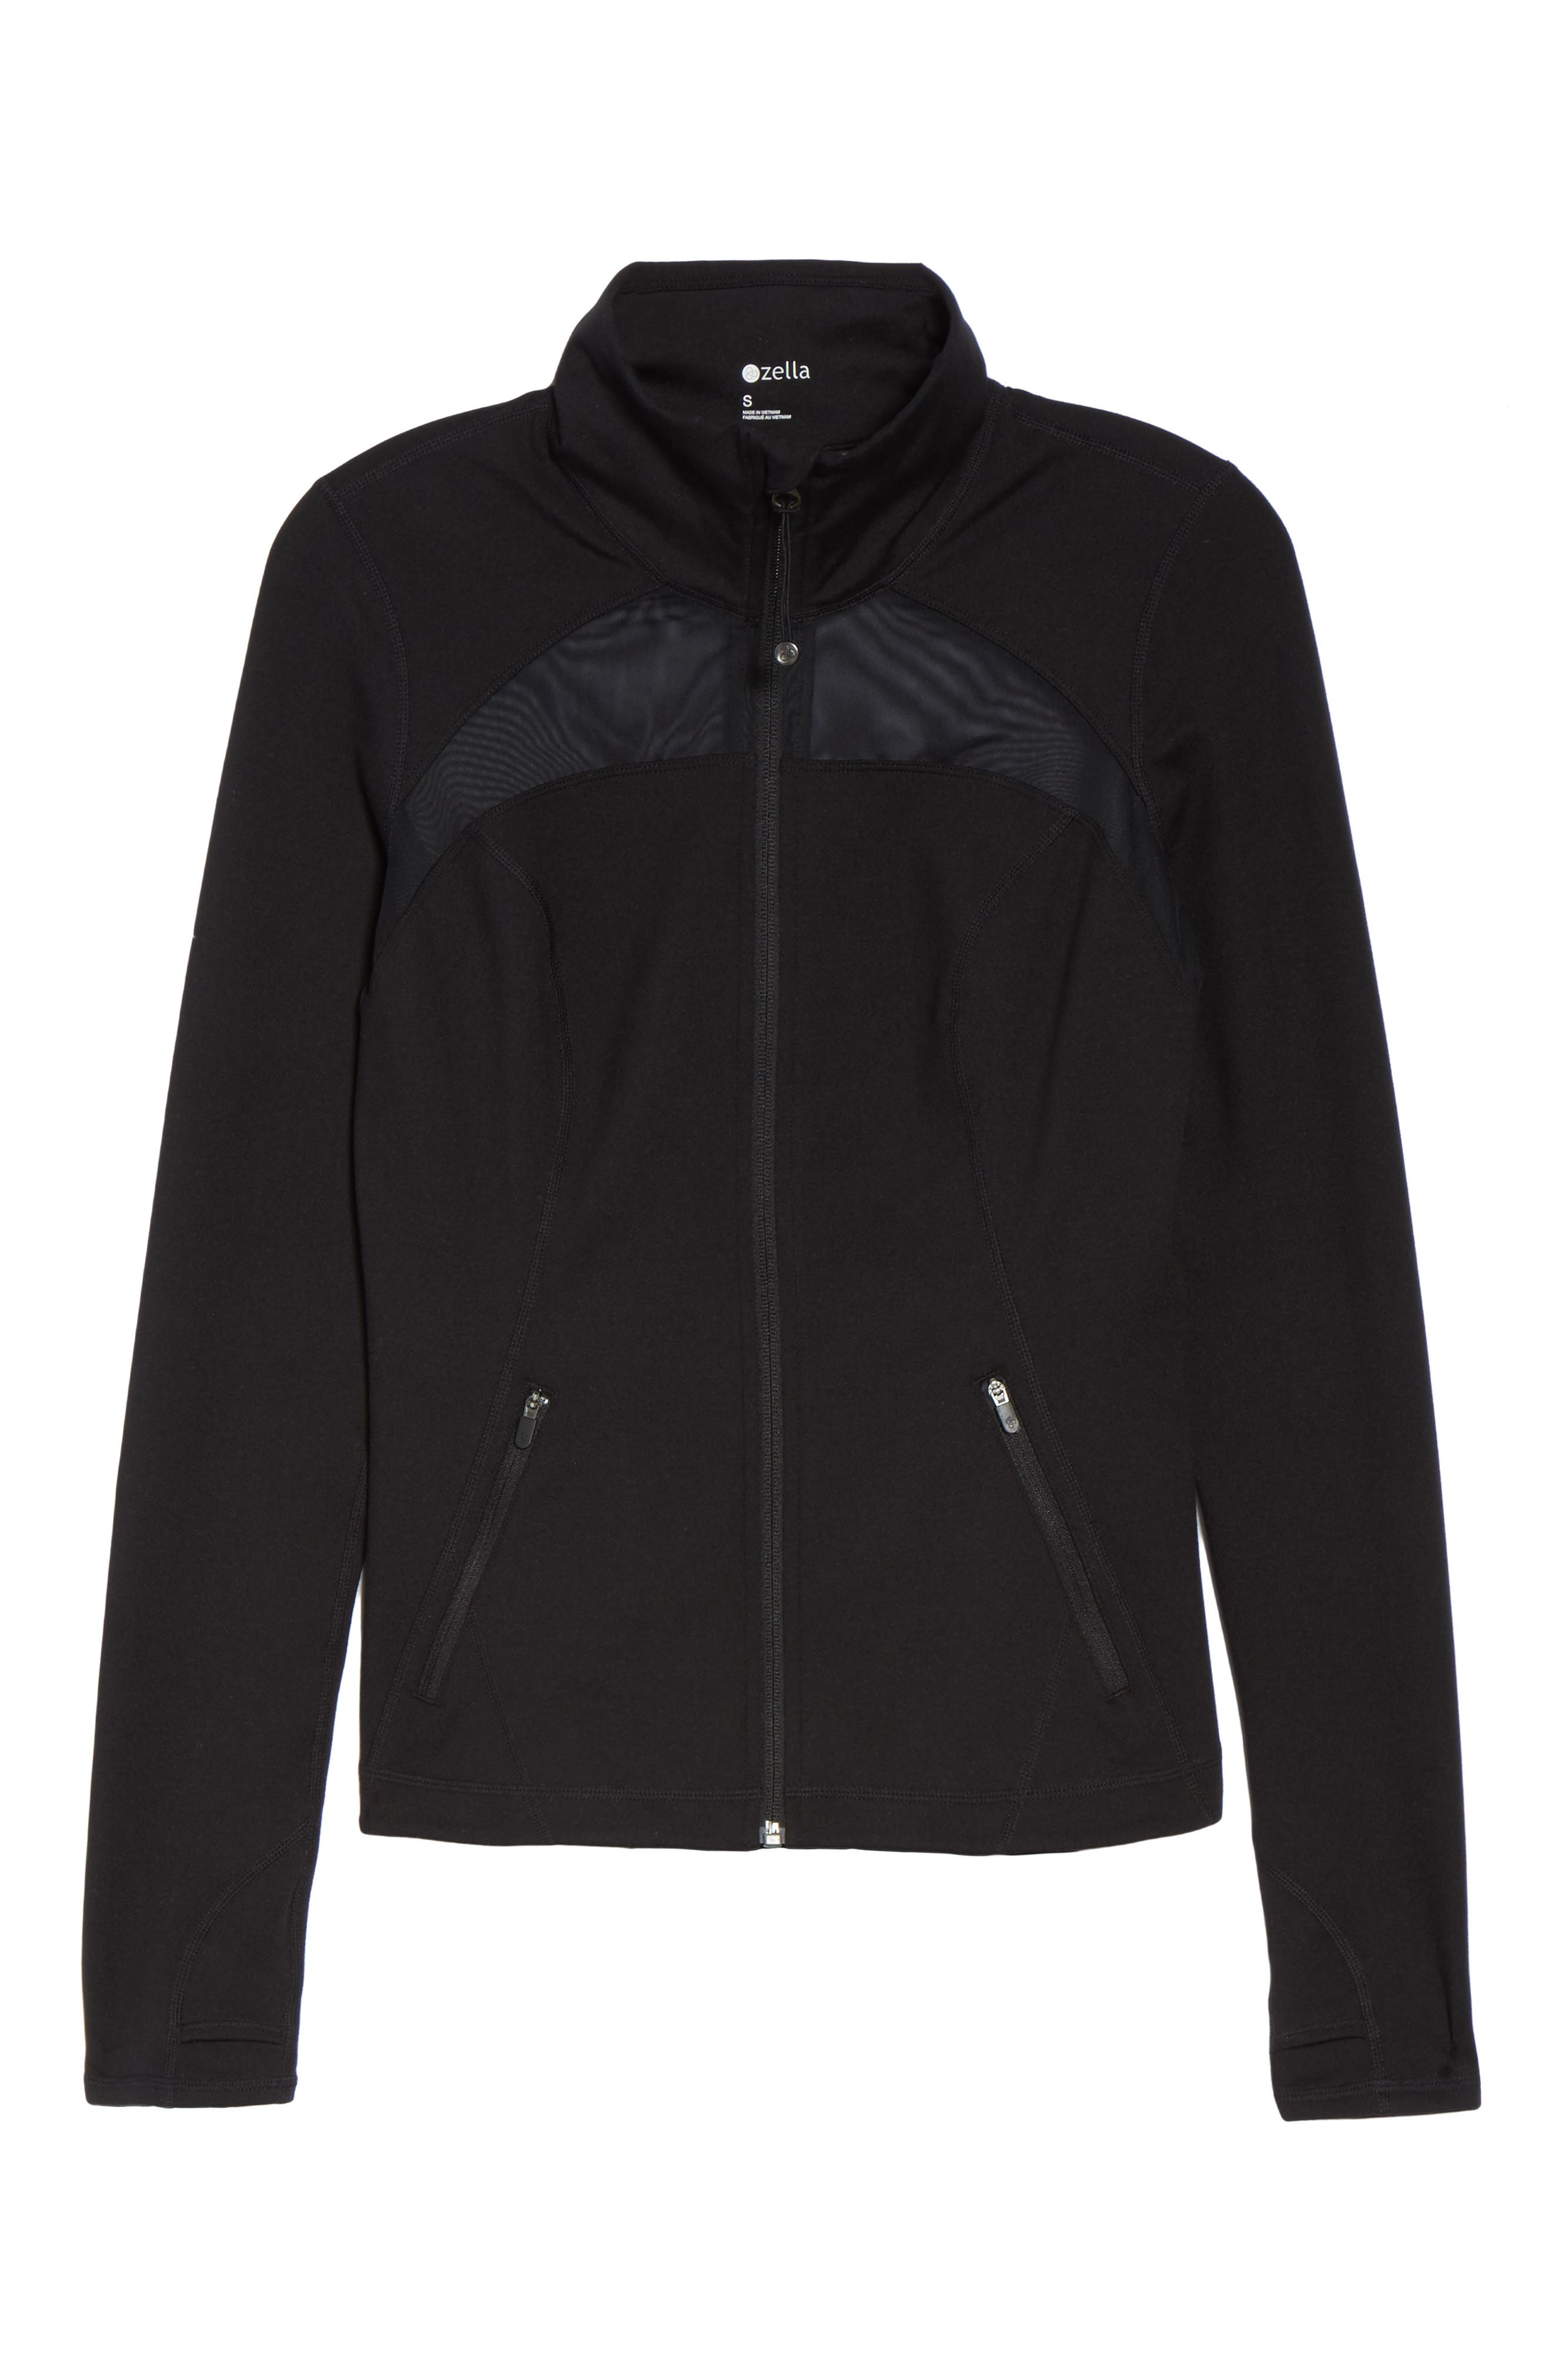 Revolve Jacket,                             Alternate thumbnail 7, color,                             001